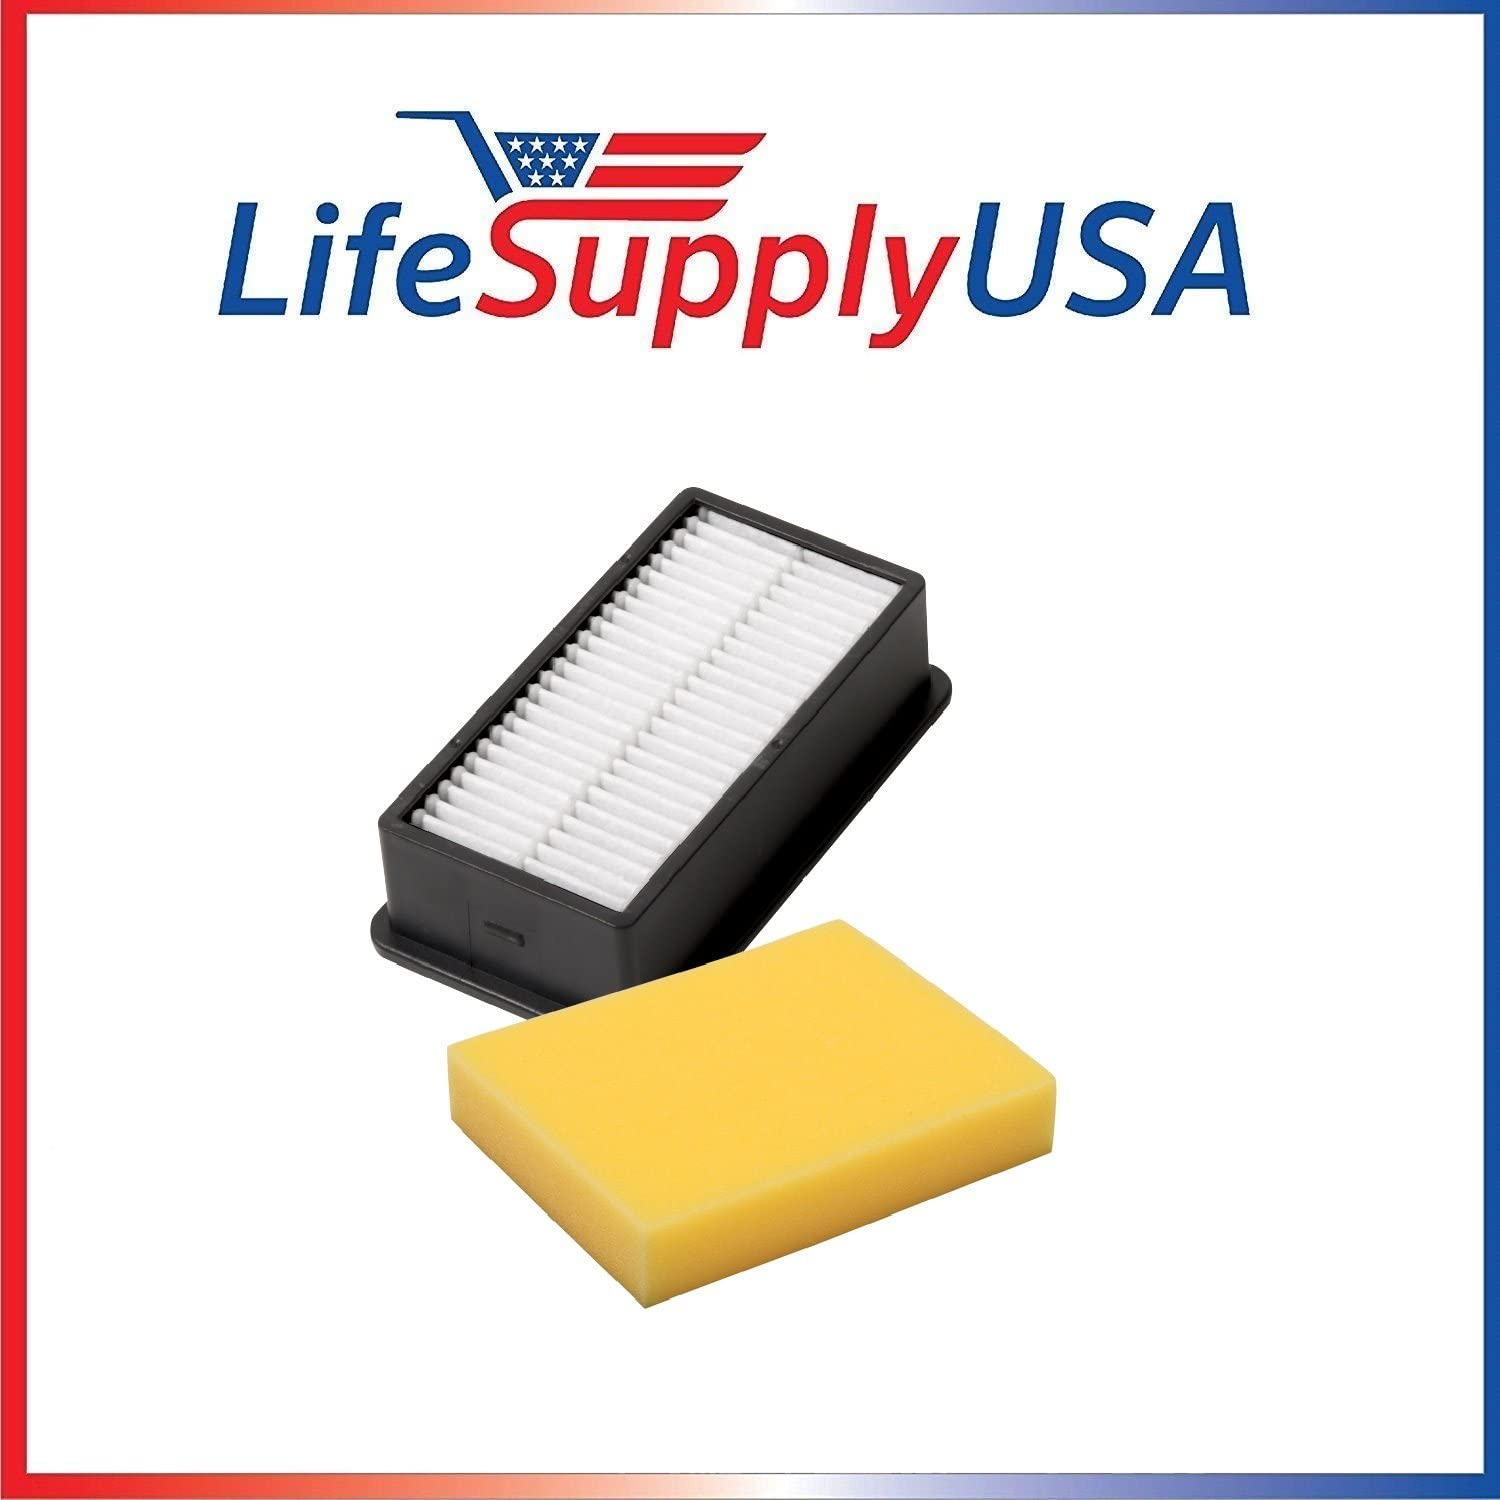 LifeSupplyUSA Filter Pack kit Compatible with BISSELL 3918 Series CleanView and PowerLifter Upright Vacuum Cleaners BISSELL Style 1008 (1 Set)